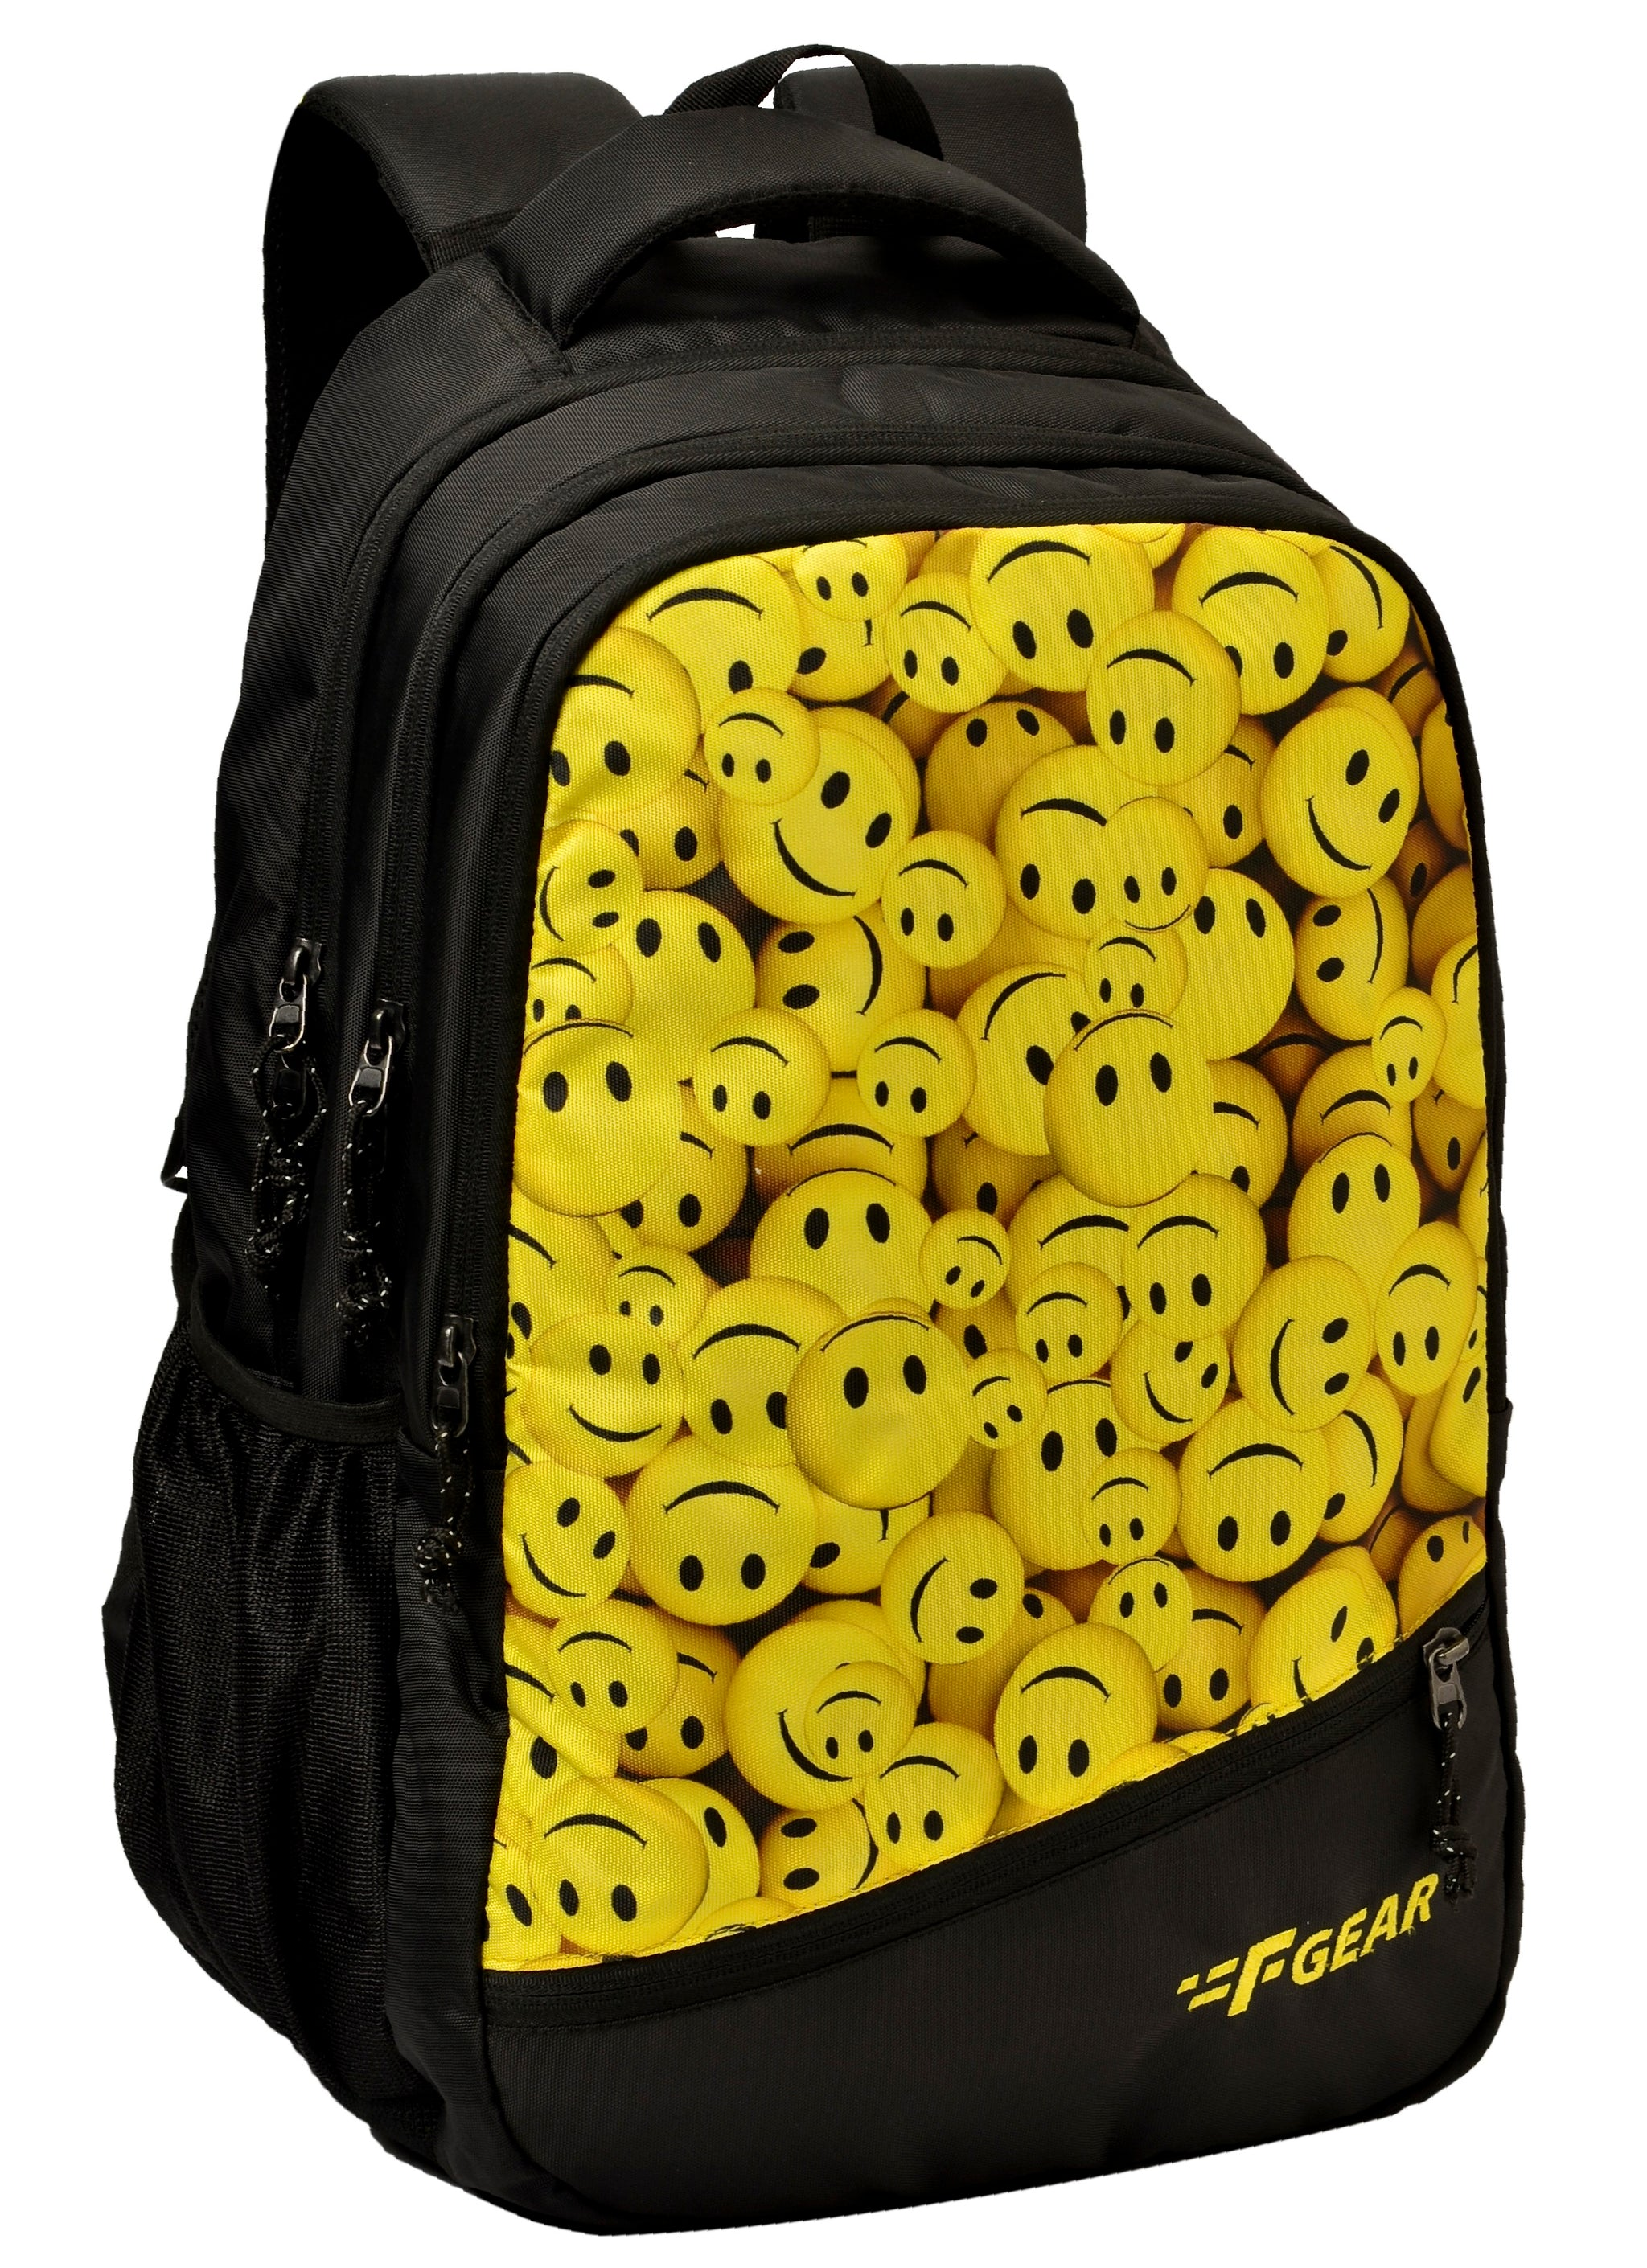 F Gear Smiley 35 Liters Backpack with Rain Cover (Black, Yellow)